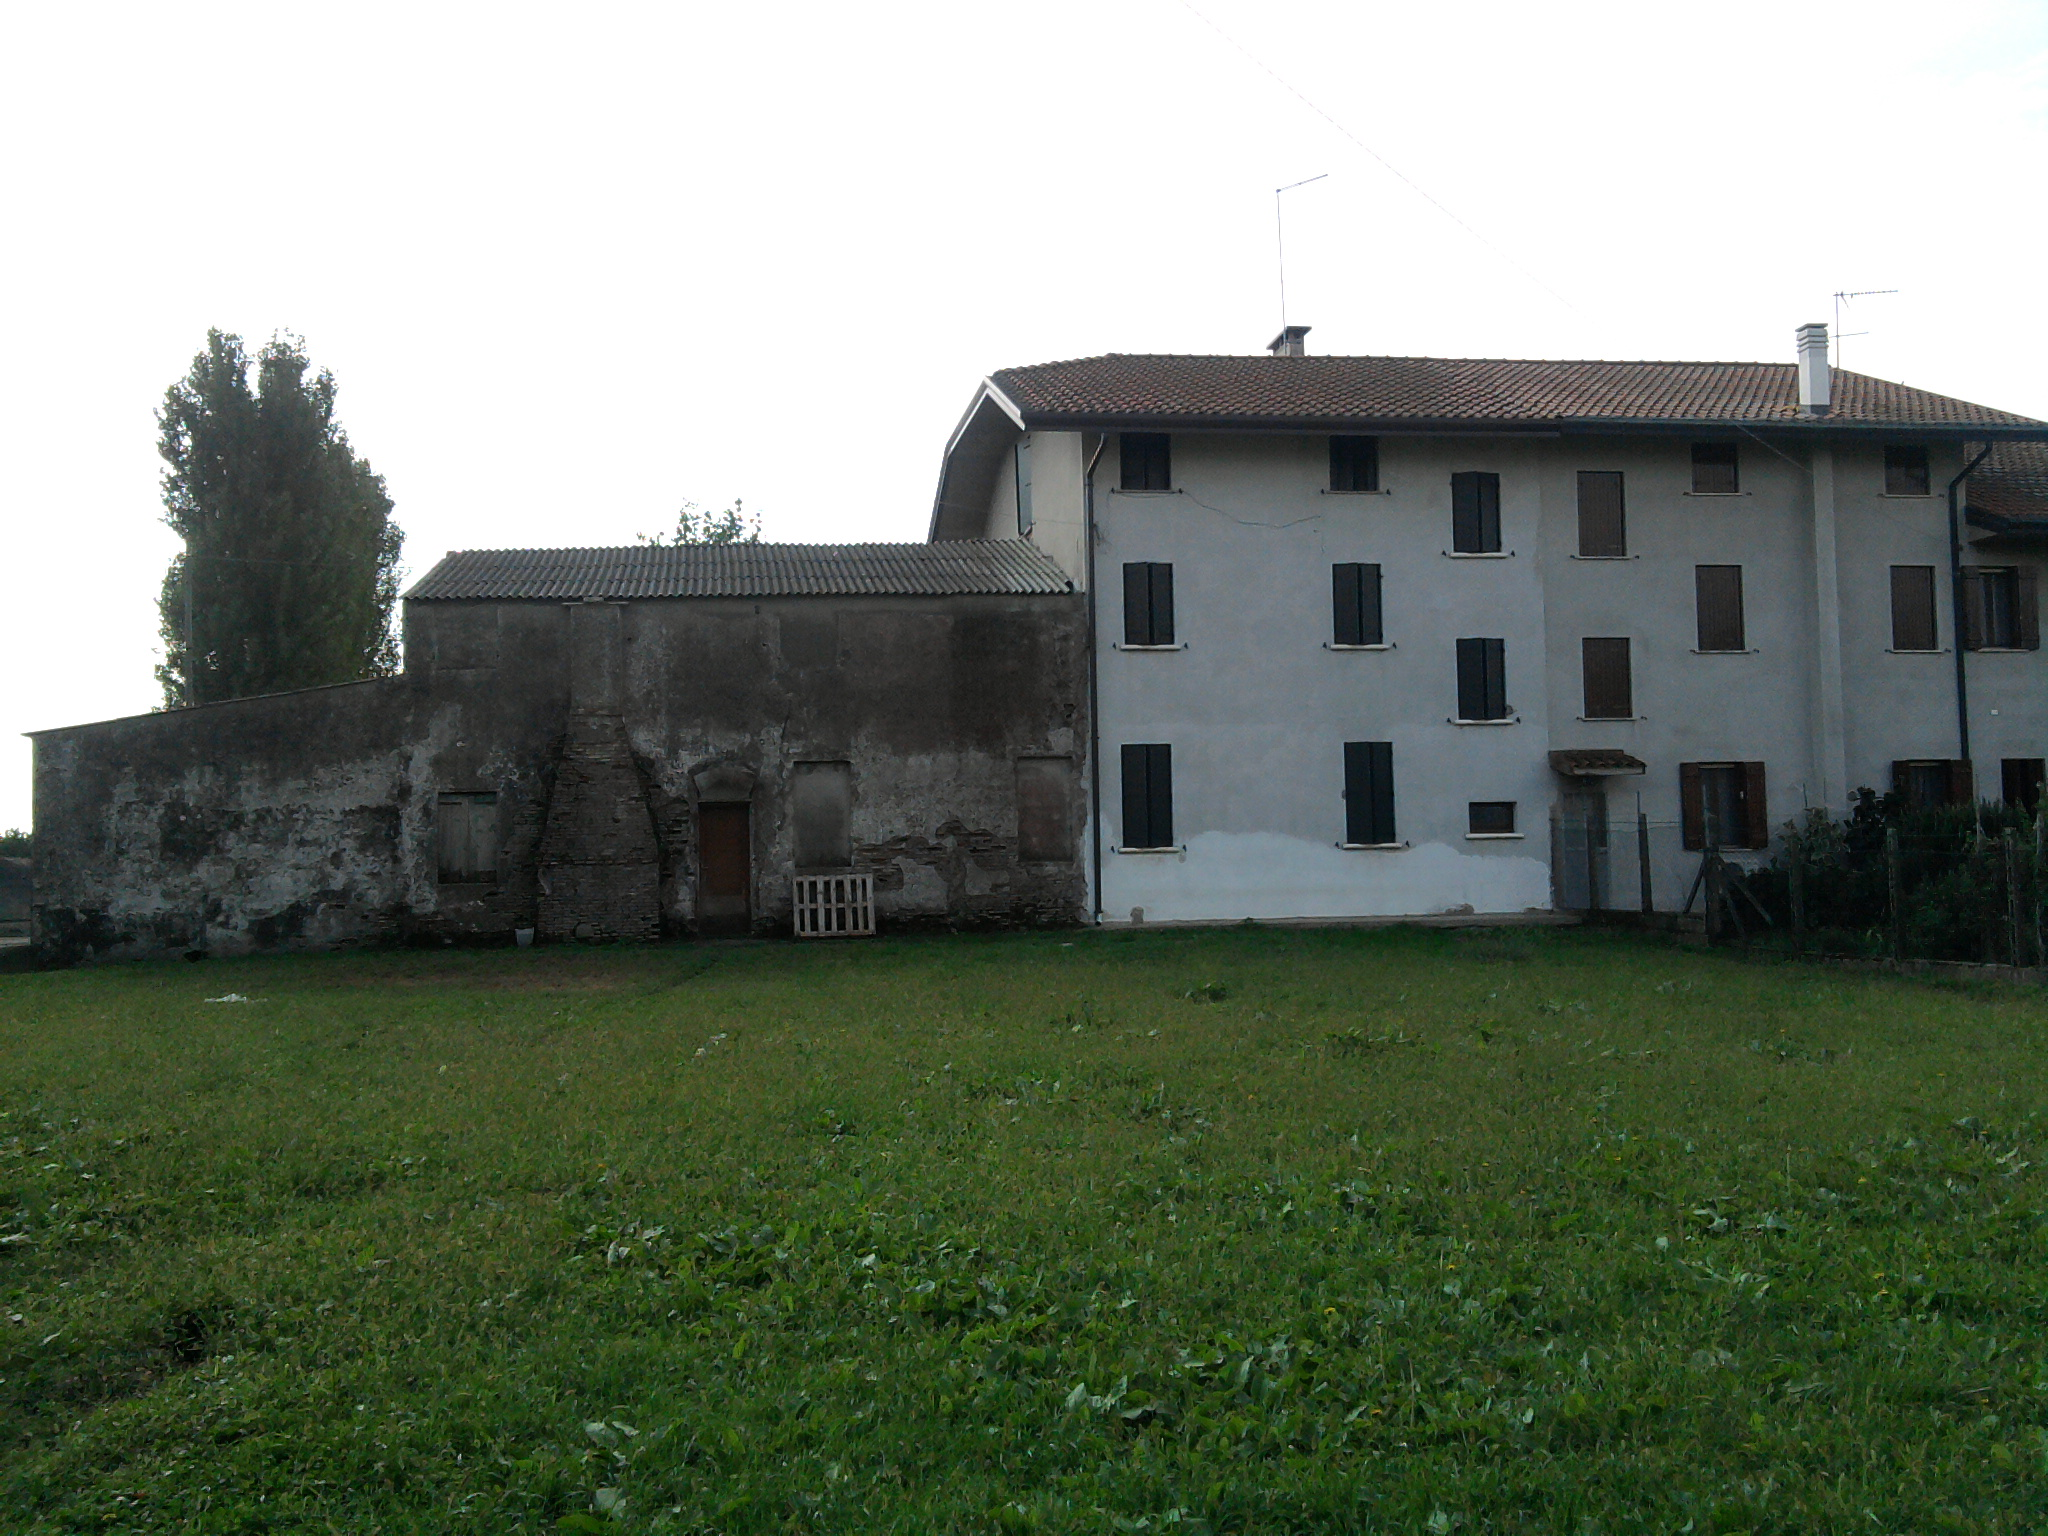 Italian Farmhouses For Sale For Sale Farmhouse Porto Viro Rovigo Italy Porto Viro